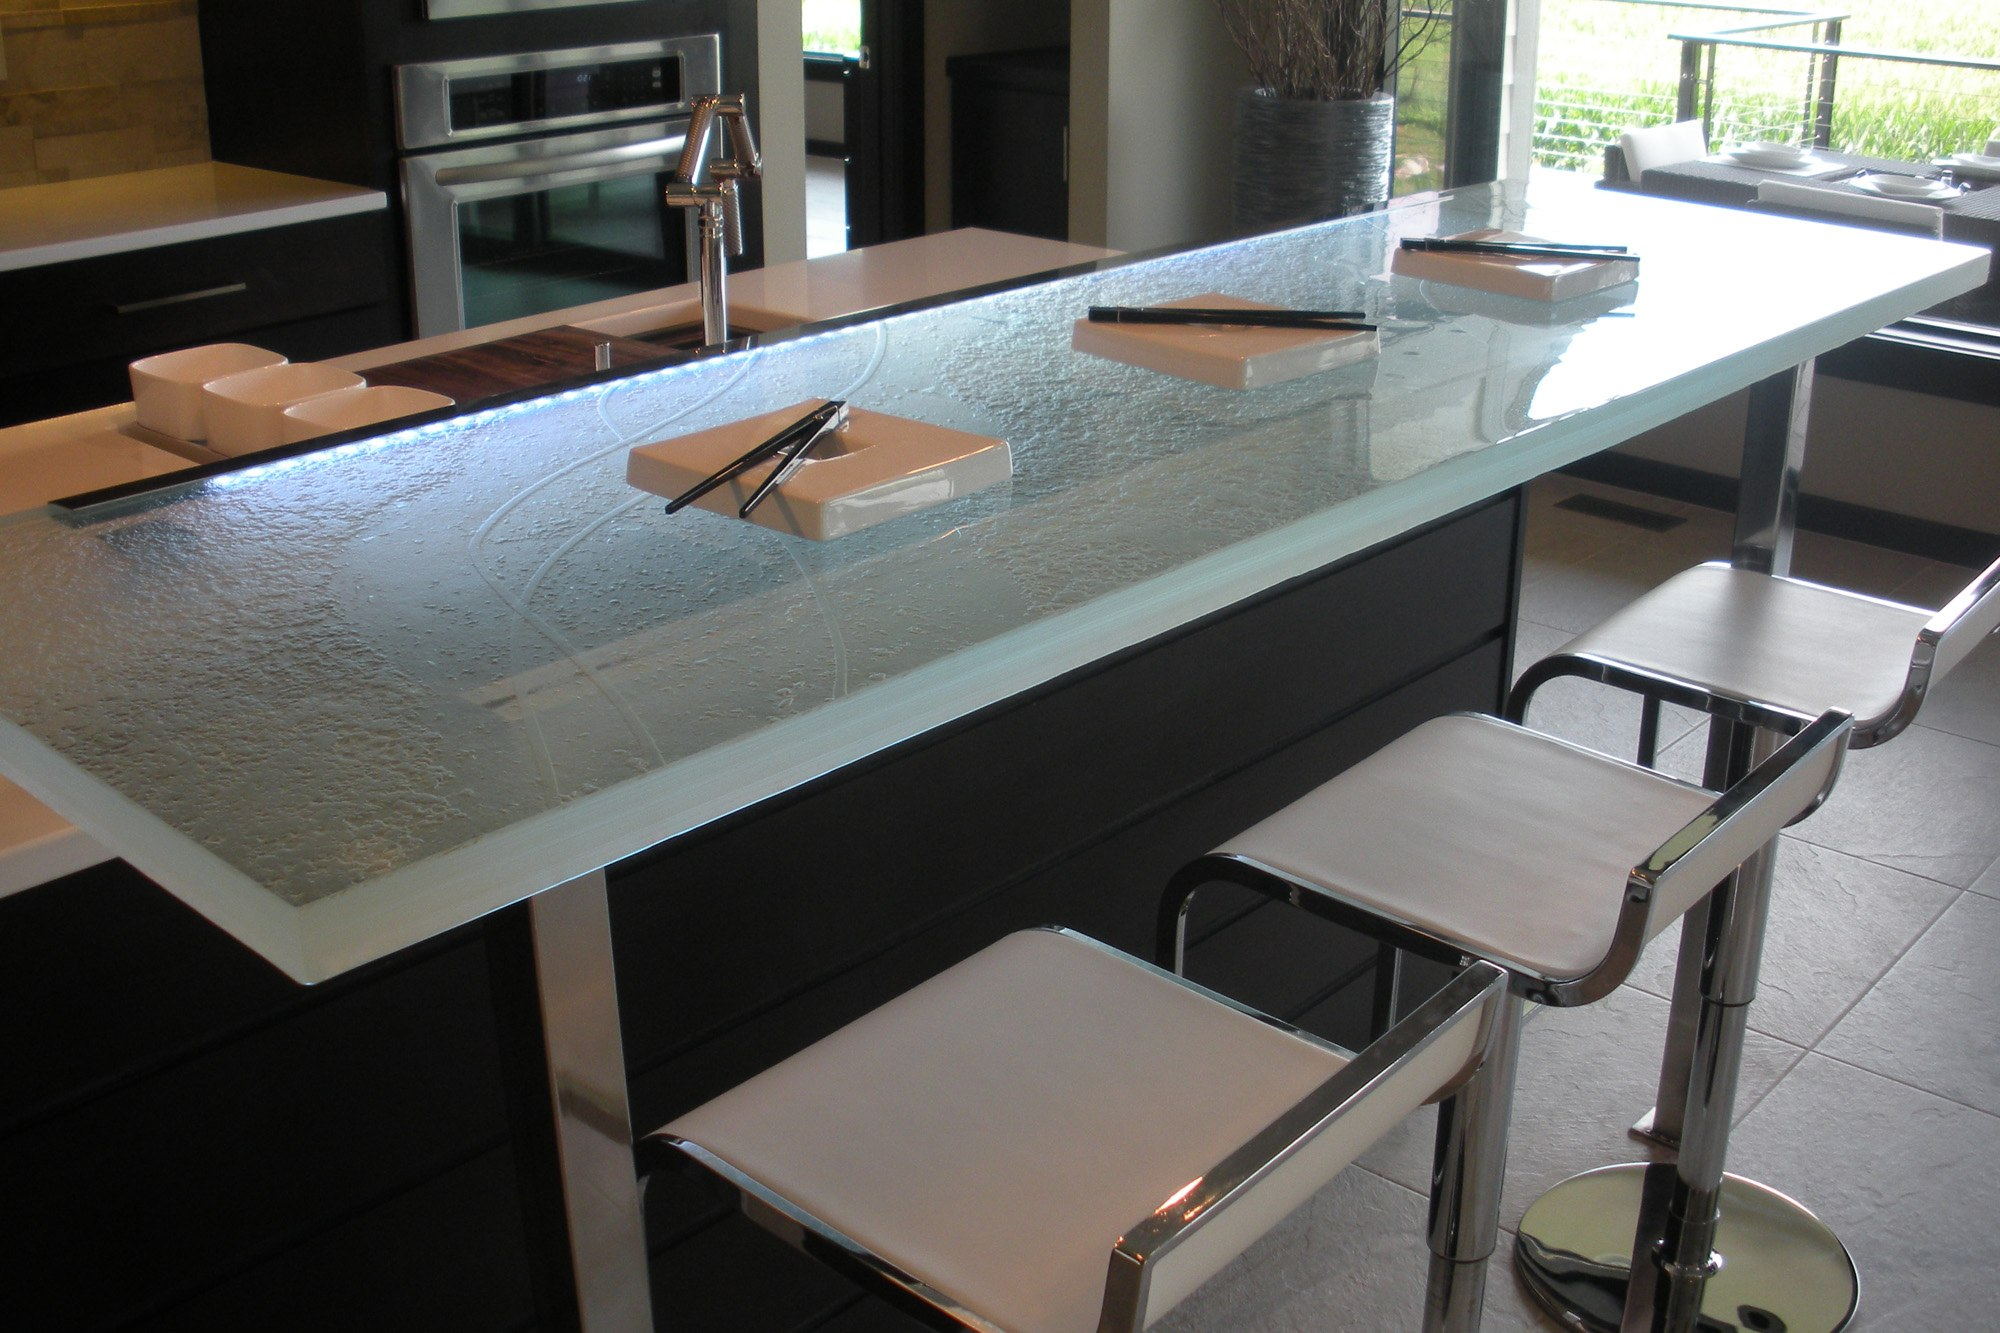 the-ultimate-luxury-touch-for-your-kitchen-decor-glass-countertops-homesthetics-12